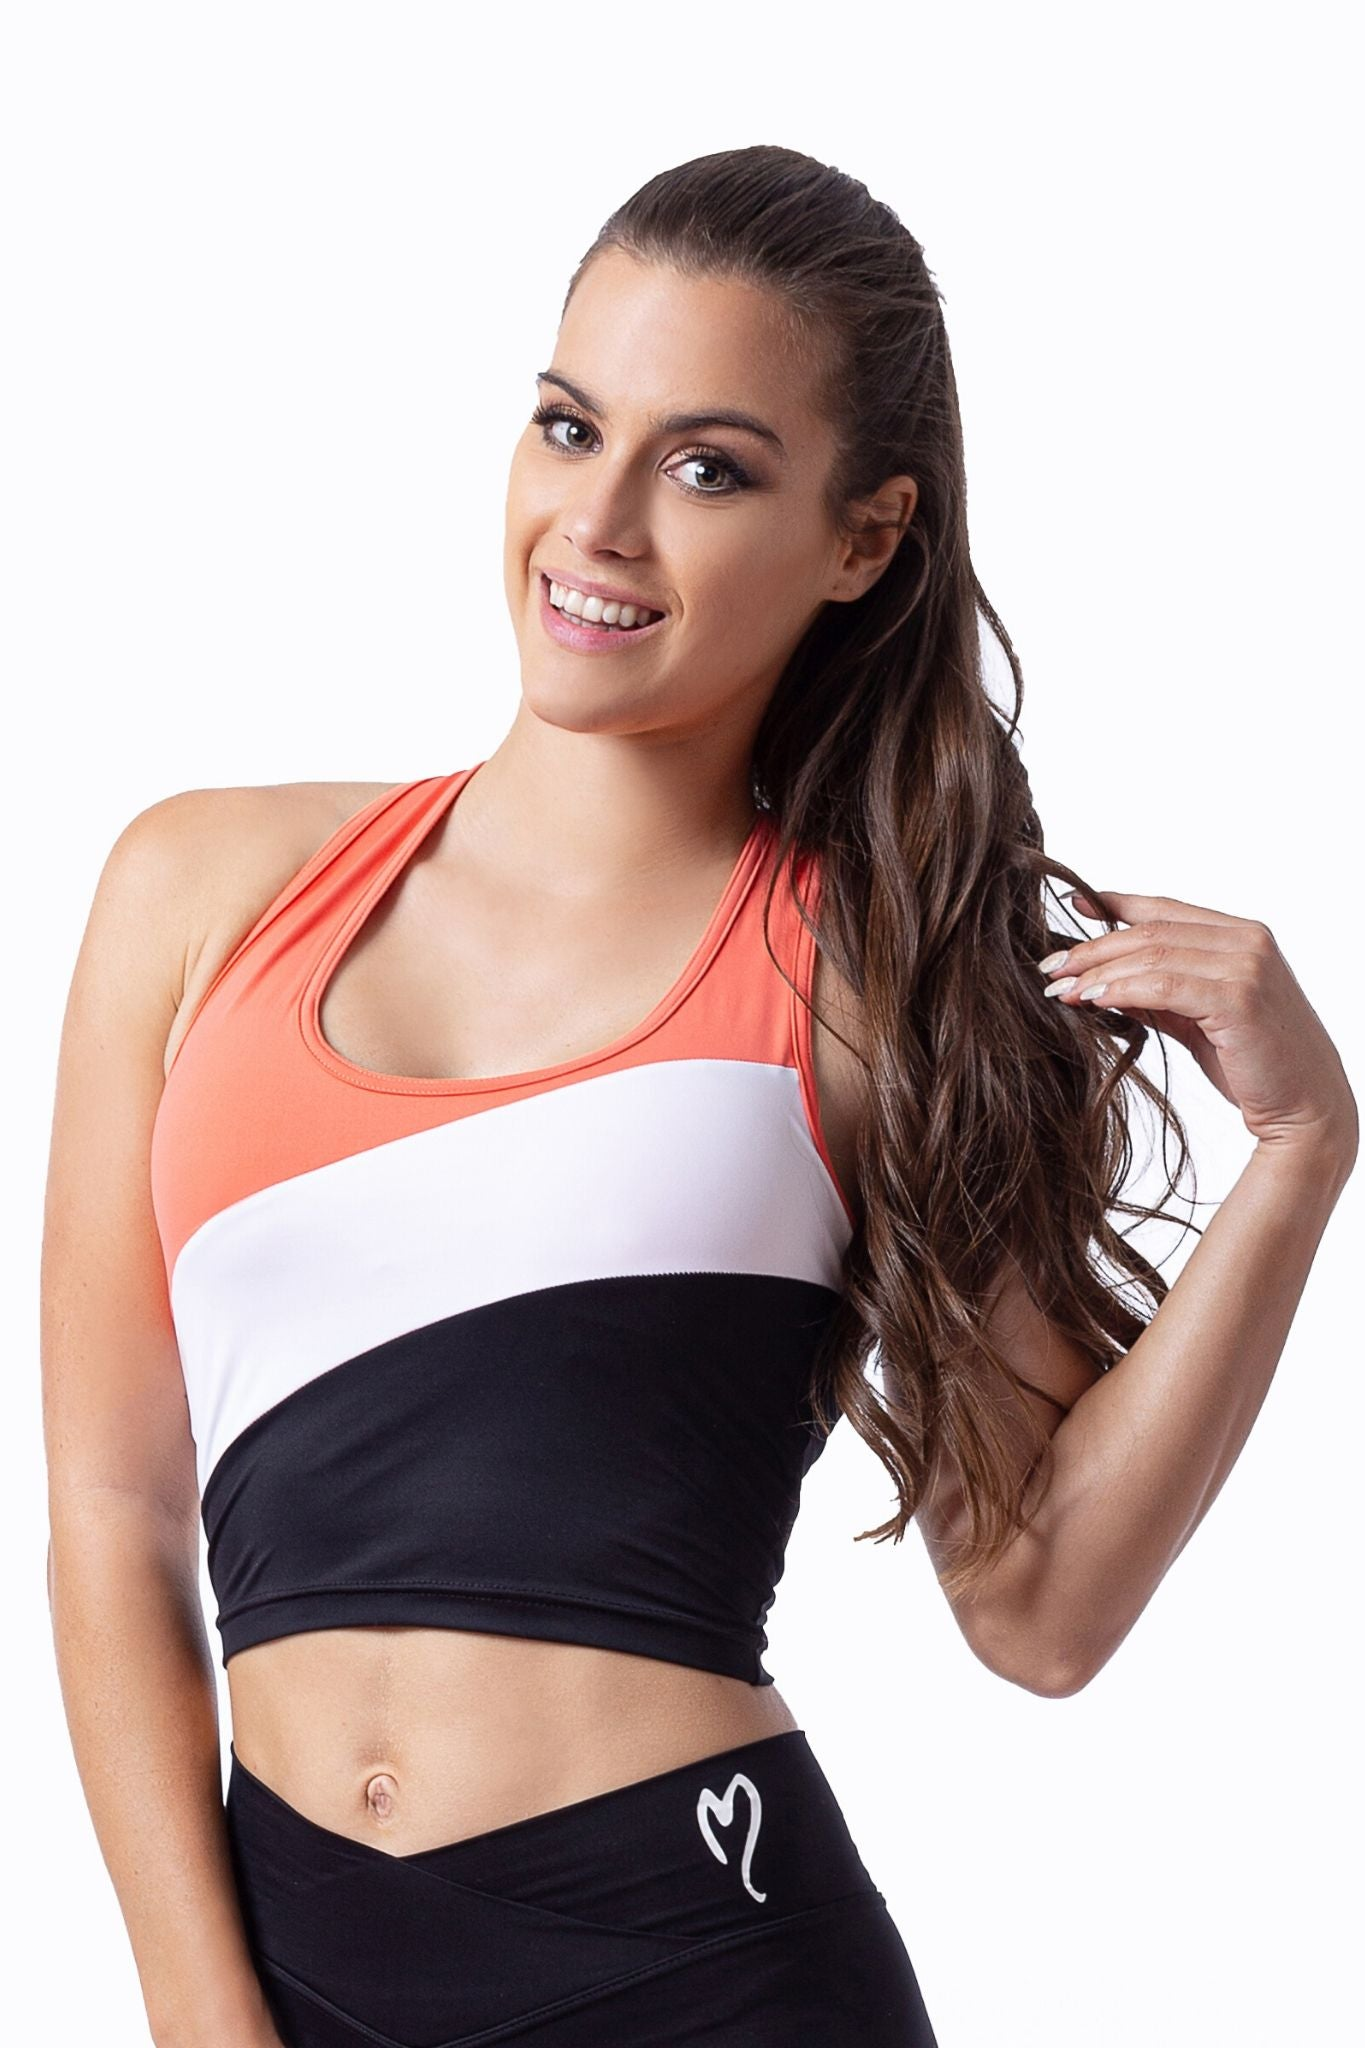 Timella top with Removable padding - BarbellPrincessUsa